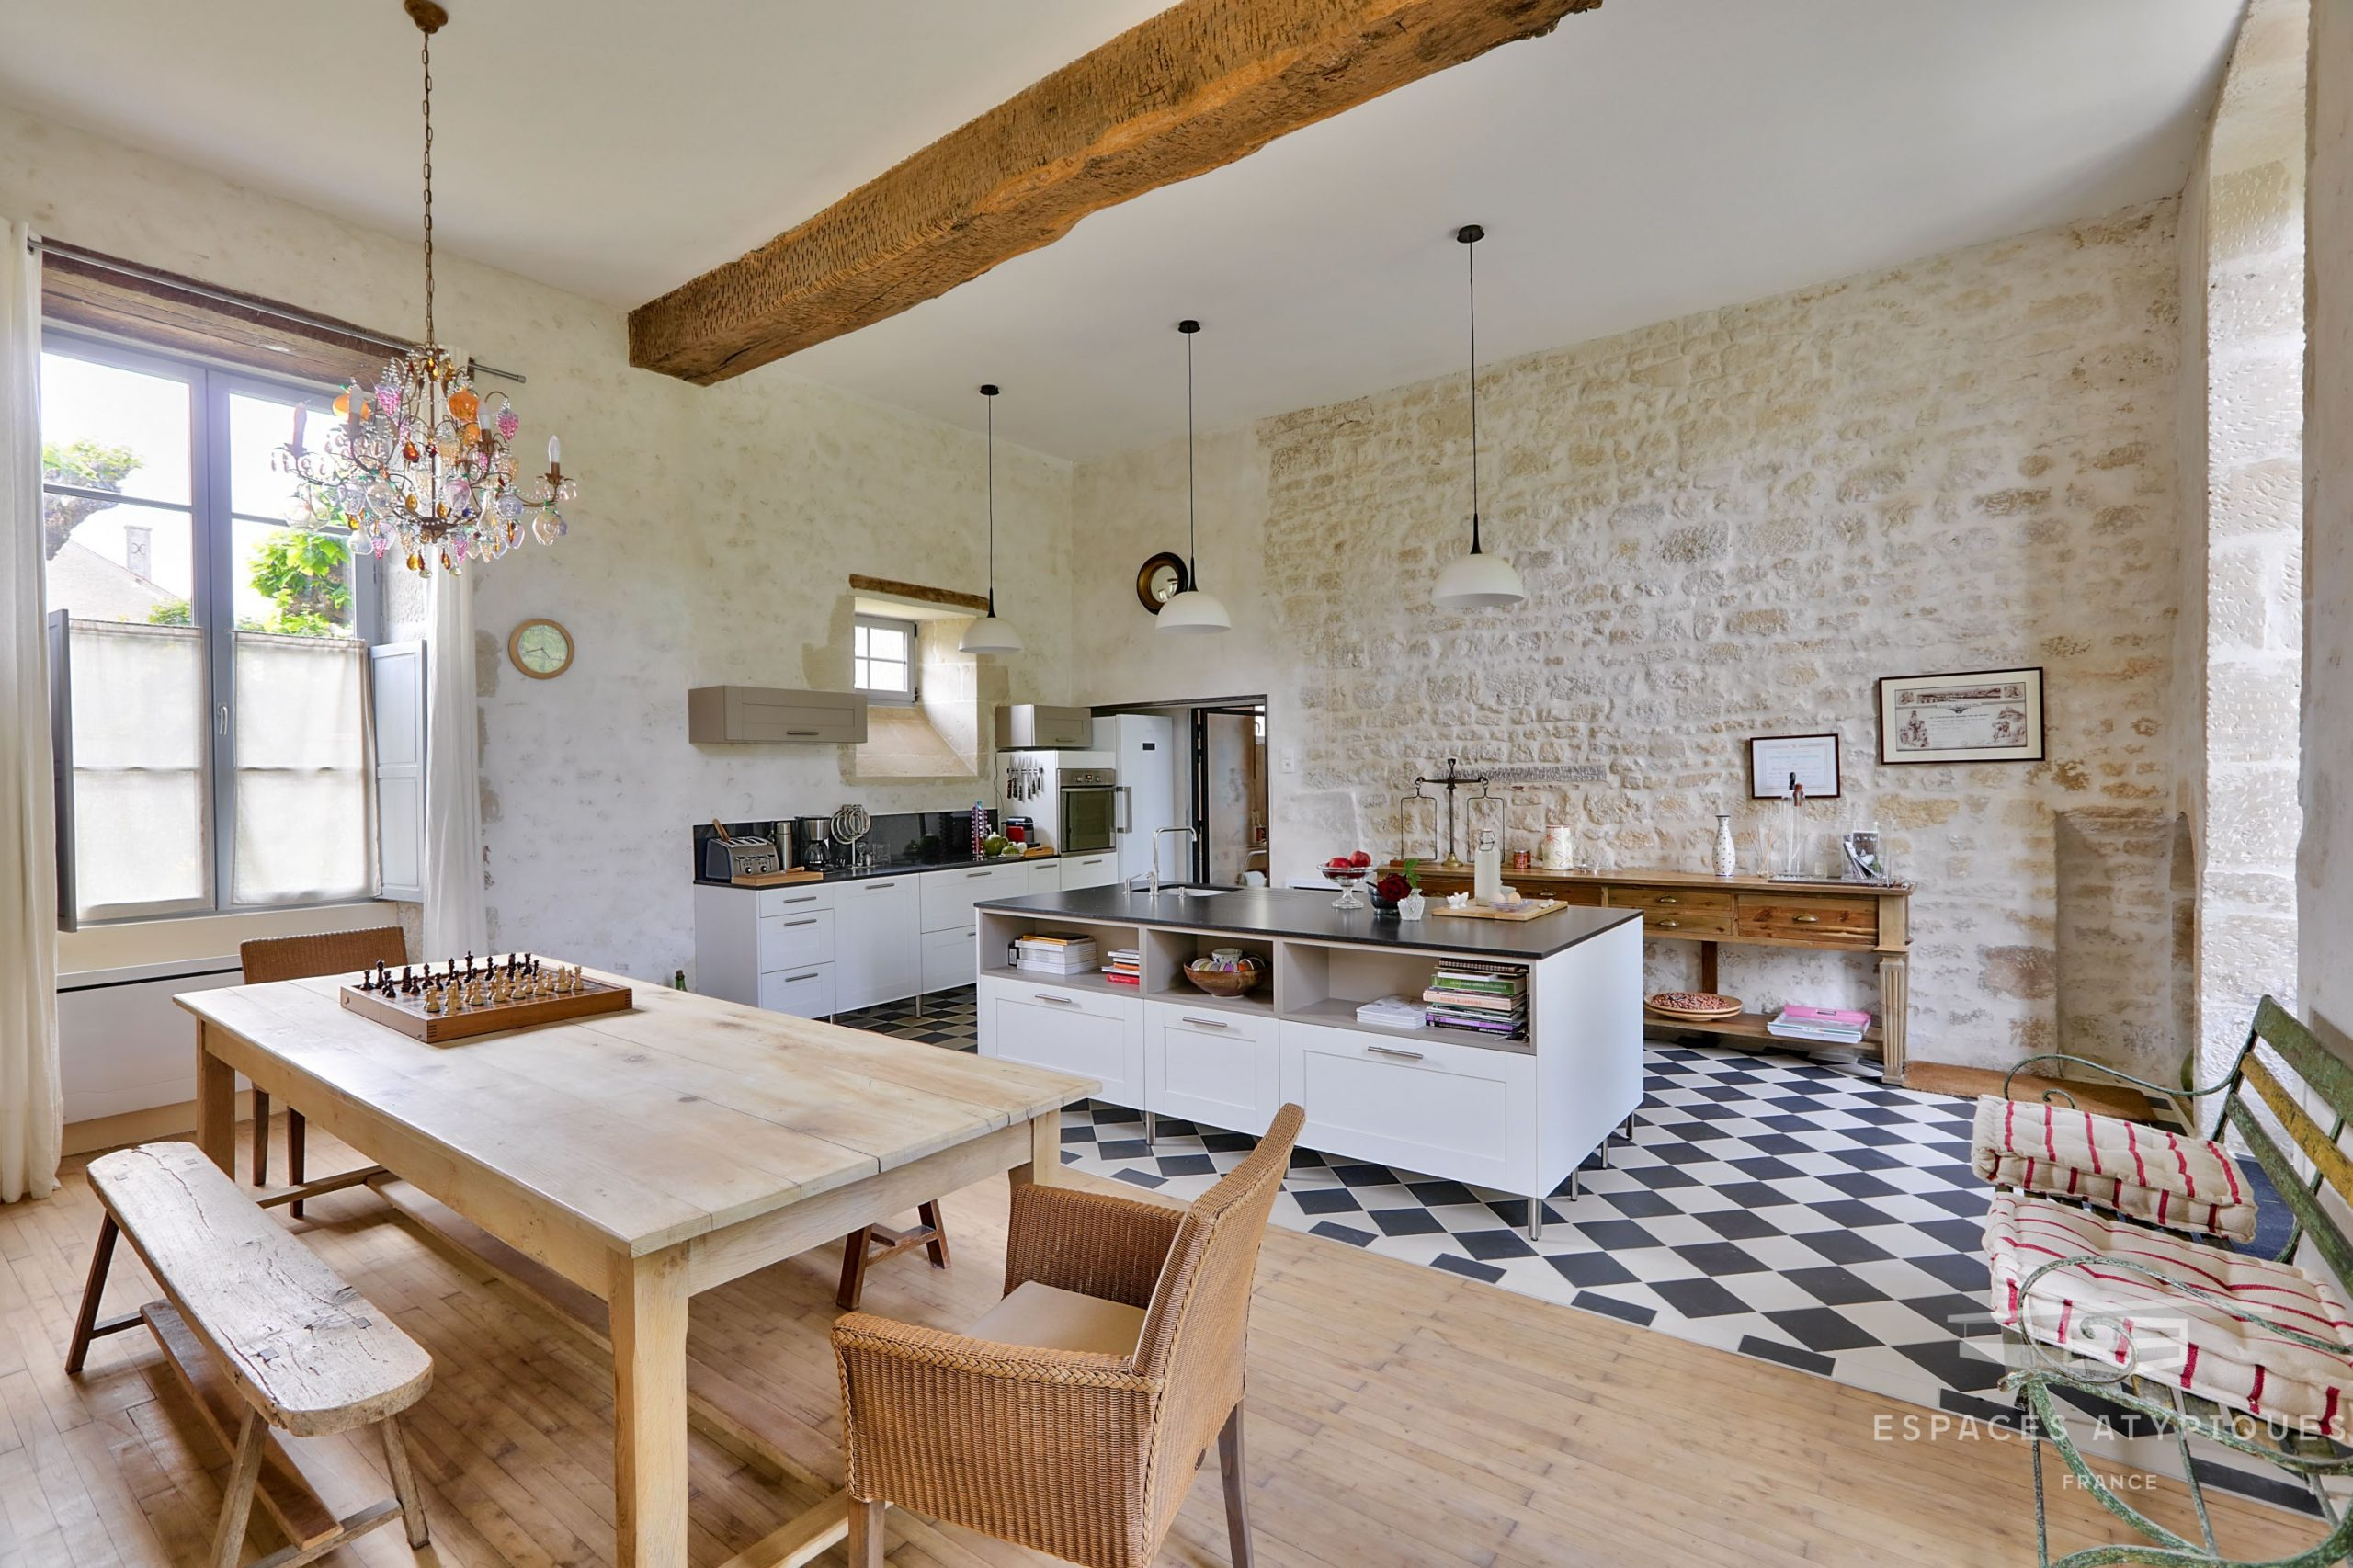 ... Traces Date Back To The 14th Century. Presented By Espaces Atypiques,  This Residence Has An Immediate Charm, And Its Garden Adds The Essential  Natural ...